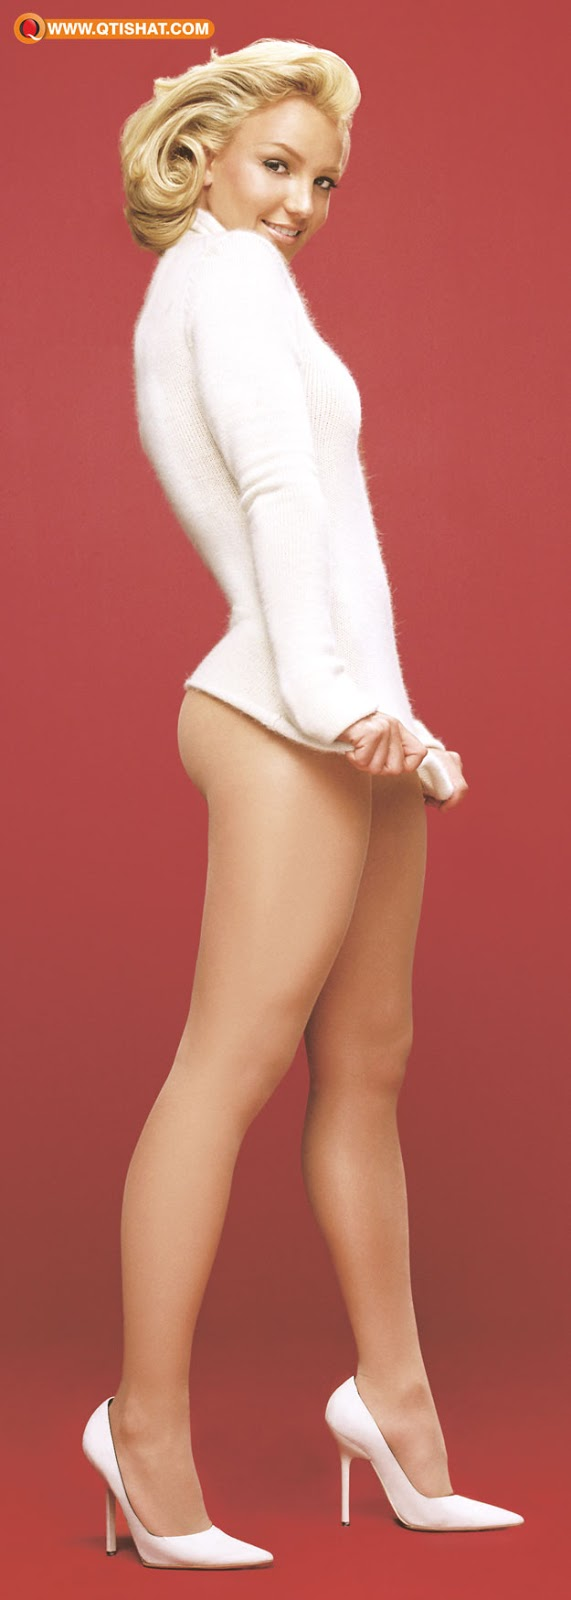 Favourite Britney spear pantyhose when she's